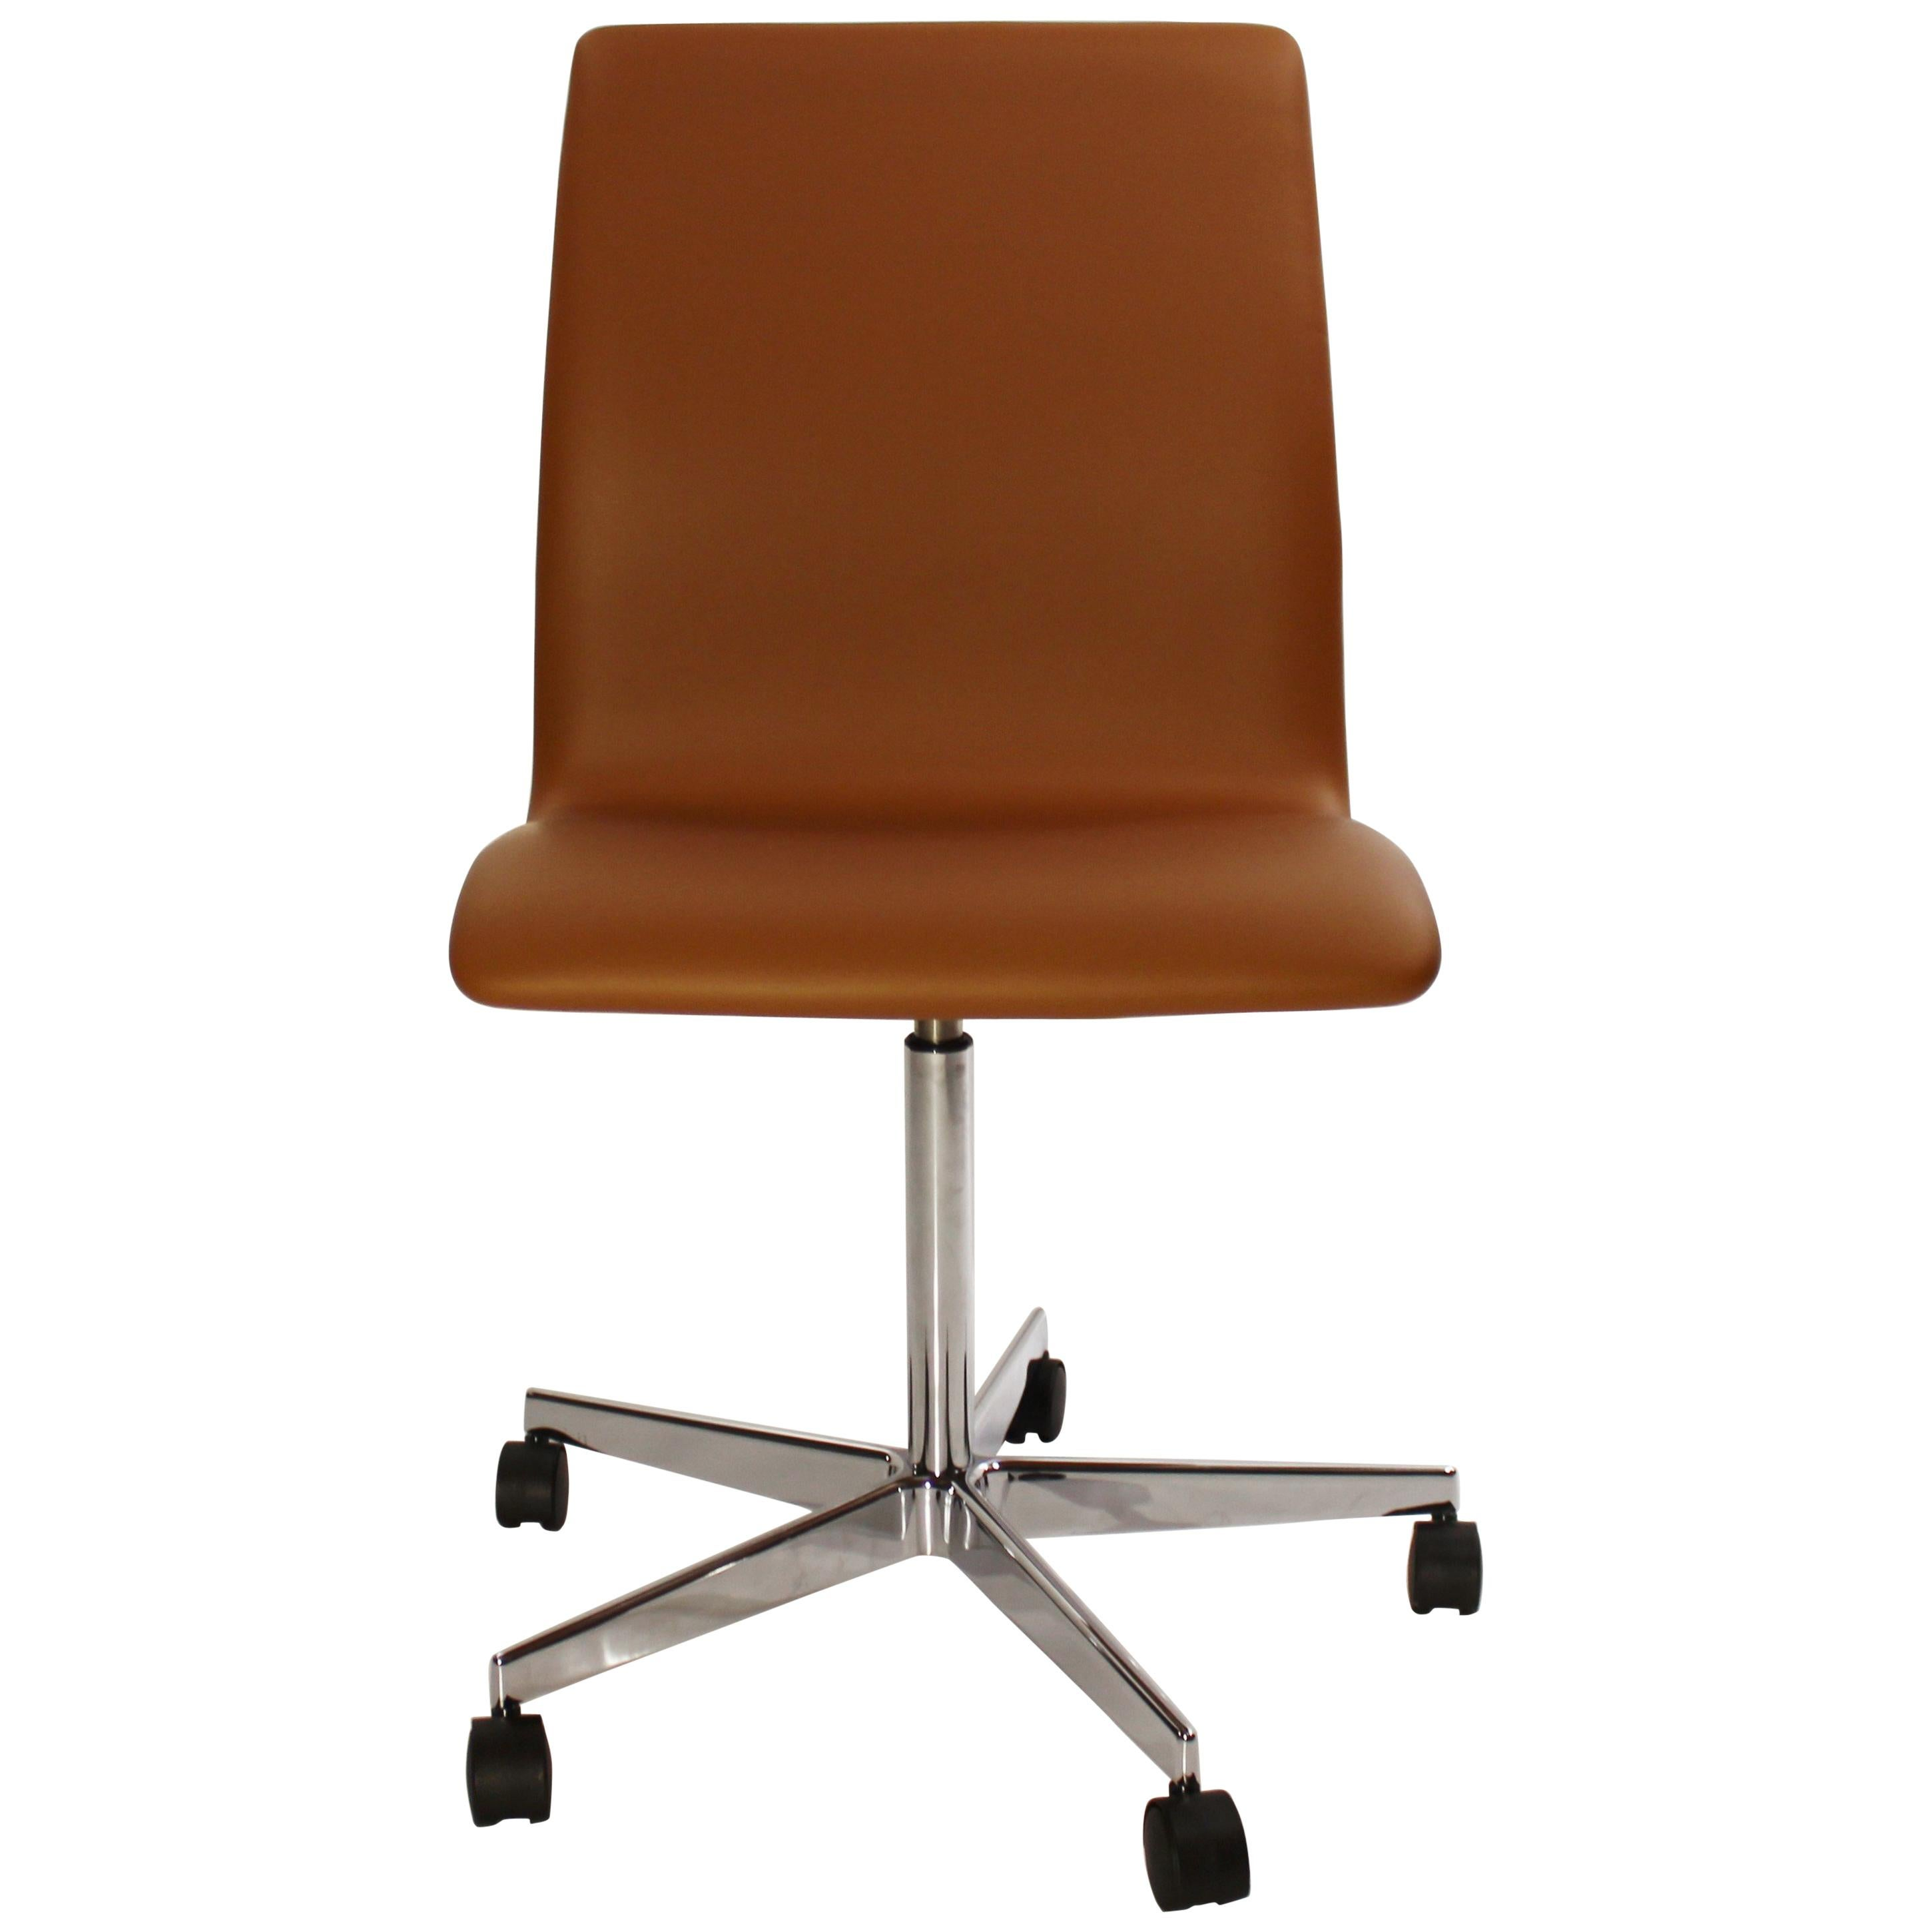 Fritz Hansen Chairs Oxford Classic Office Chair Model 3171 By Arne Jacobsen And Fritz Hansen